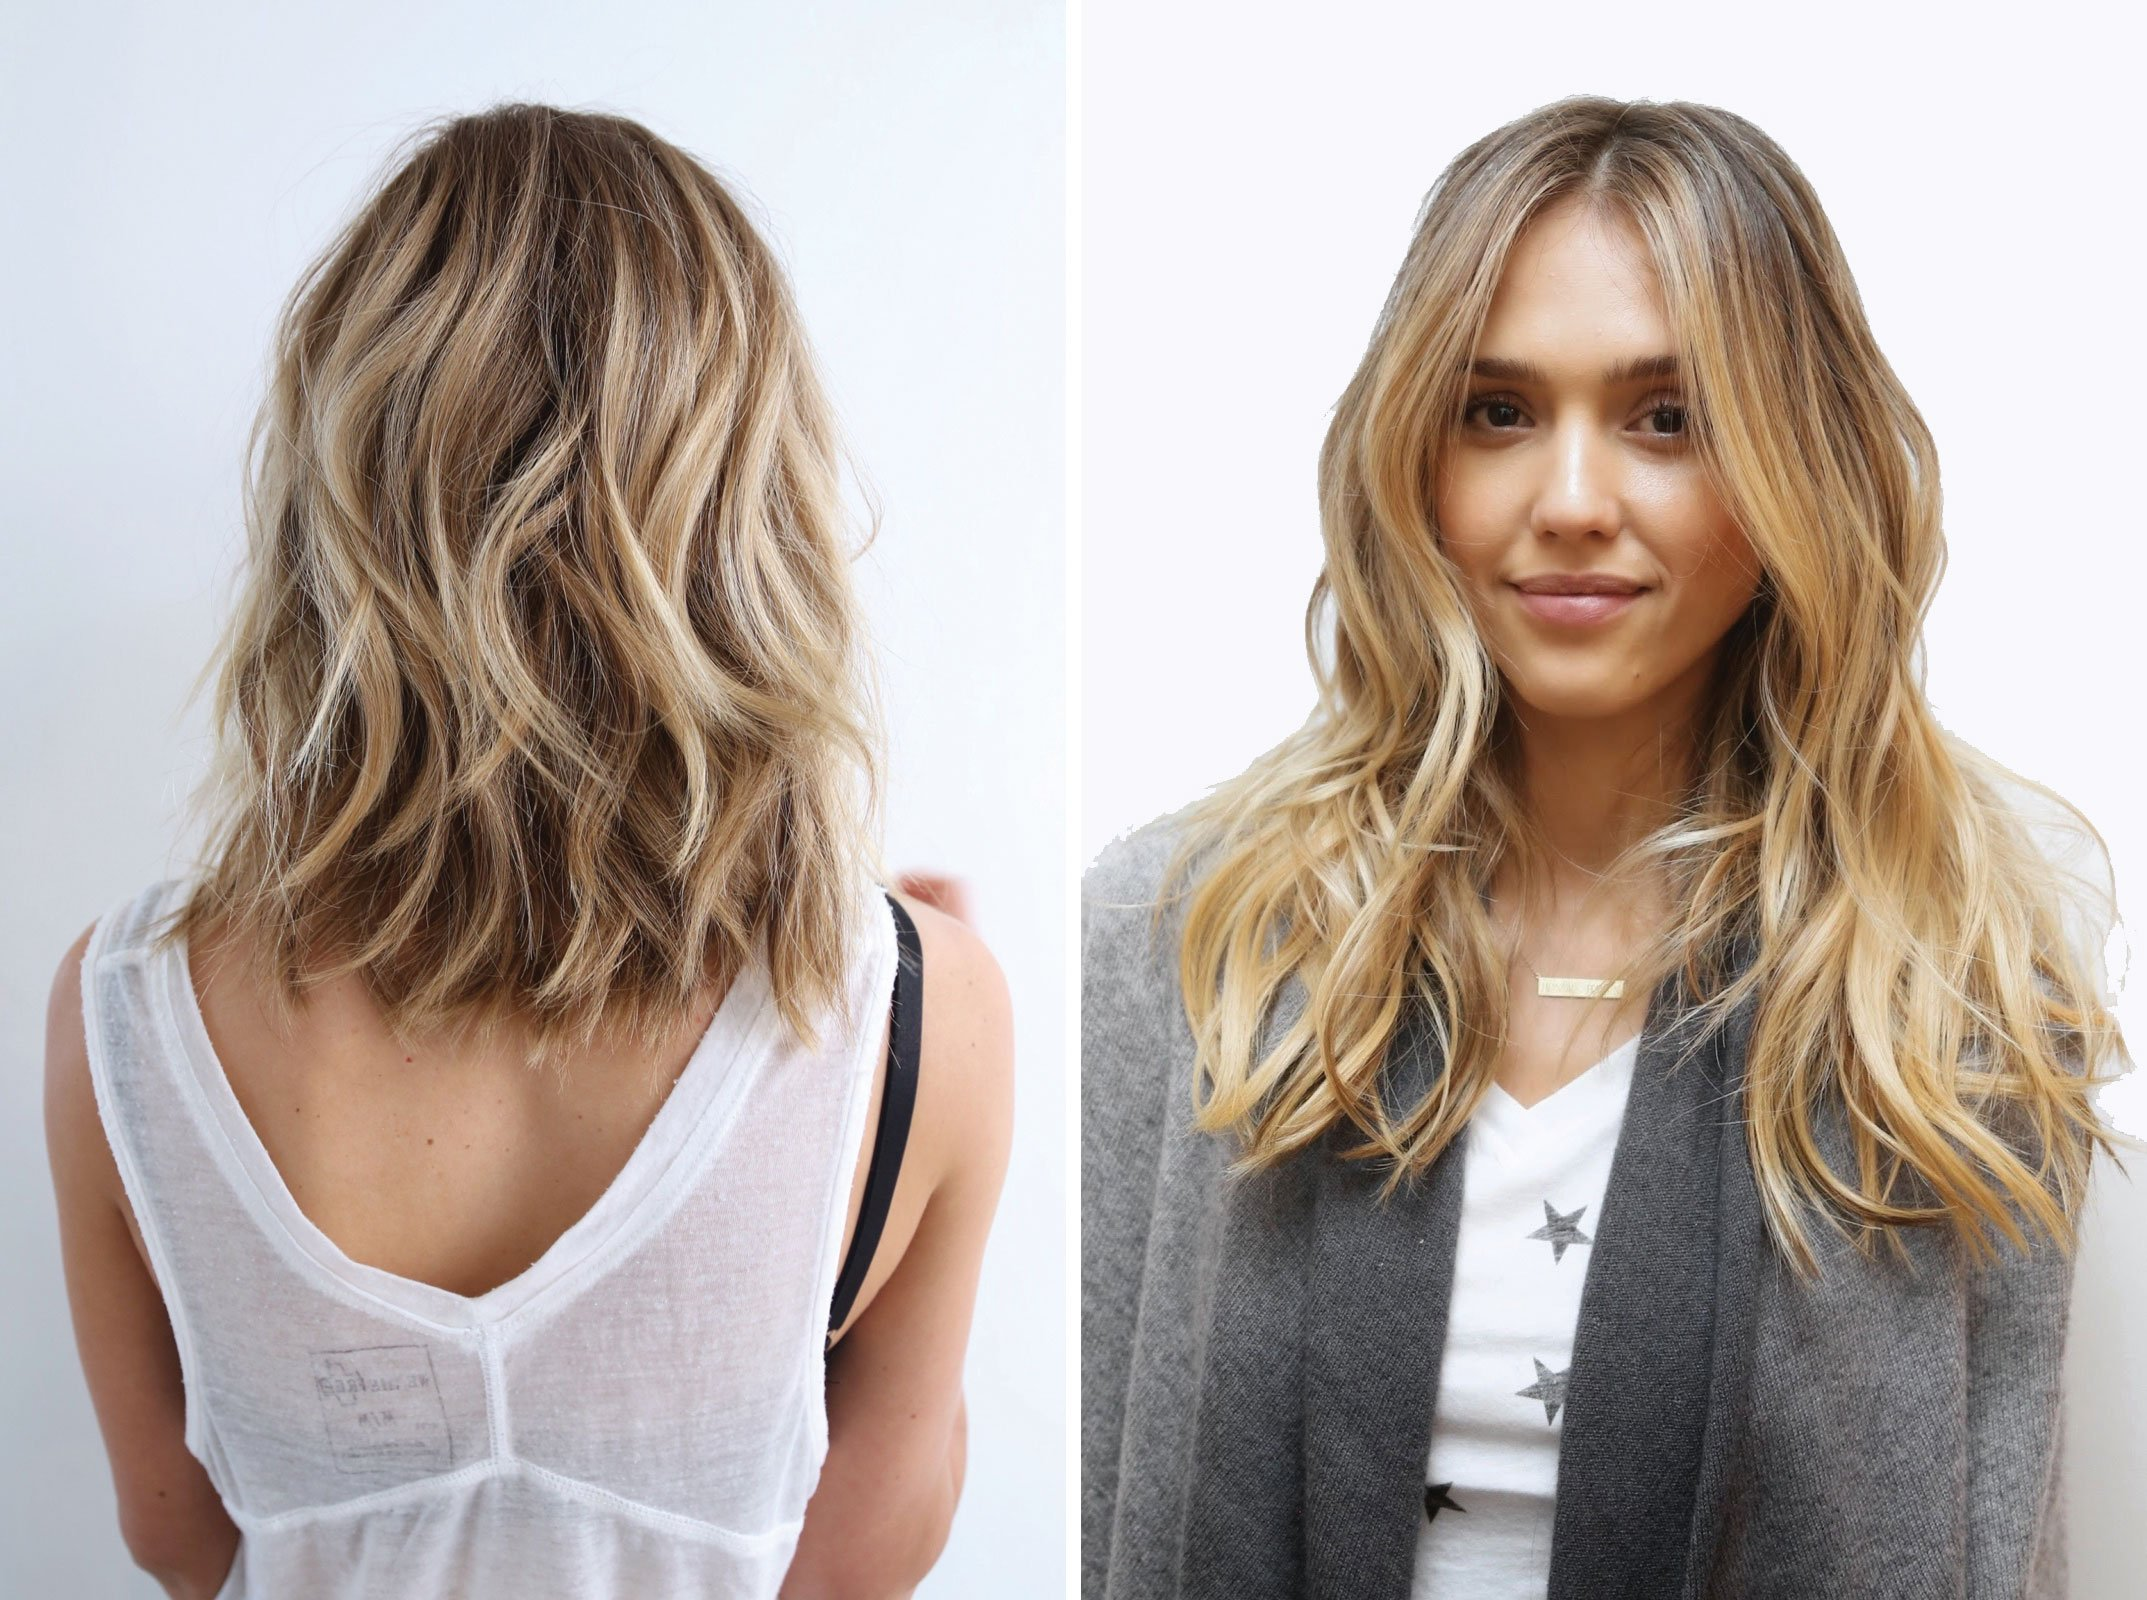 Johnny Ramirez created a beachy bronde with cool tones for the client on the left, while for Jessica Alba's bronde he went for a sophisticated take on the trend by applying the brighter tones primarily to the ends.